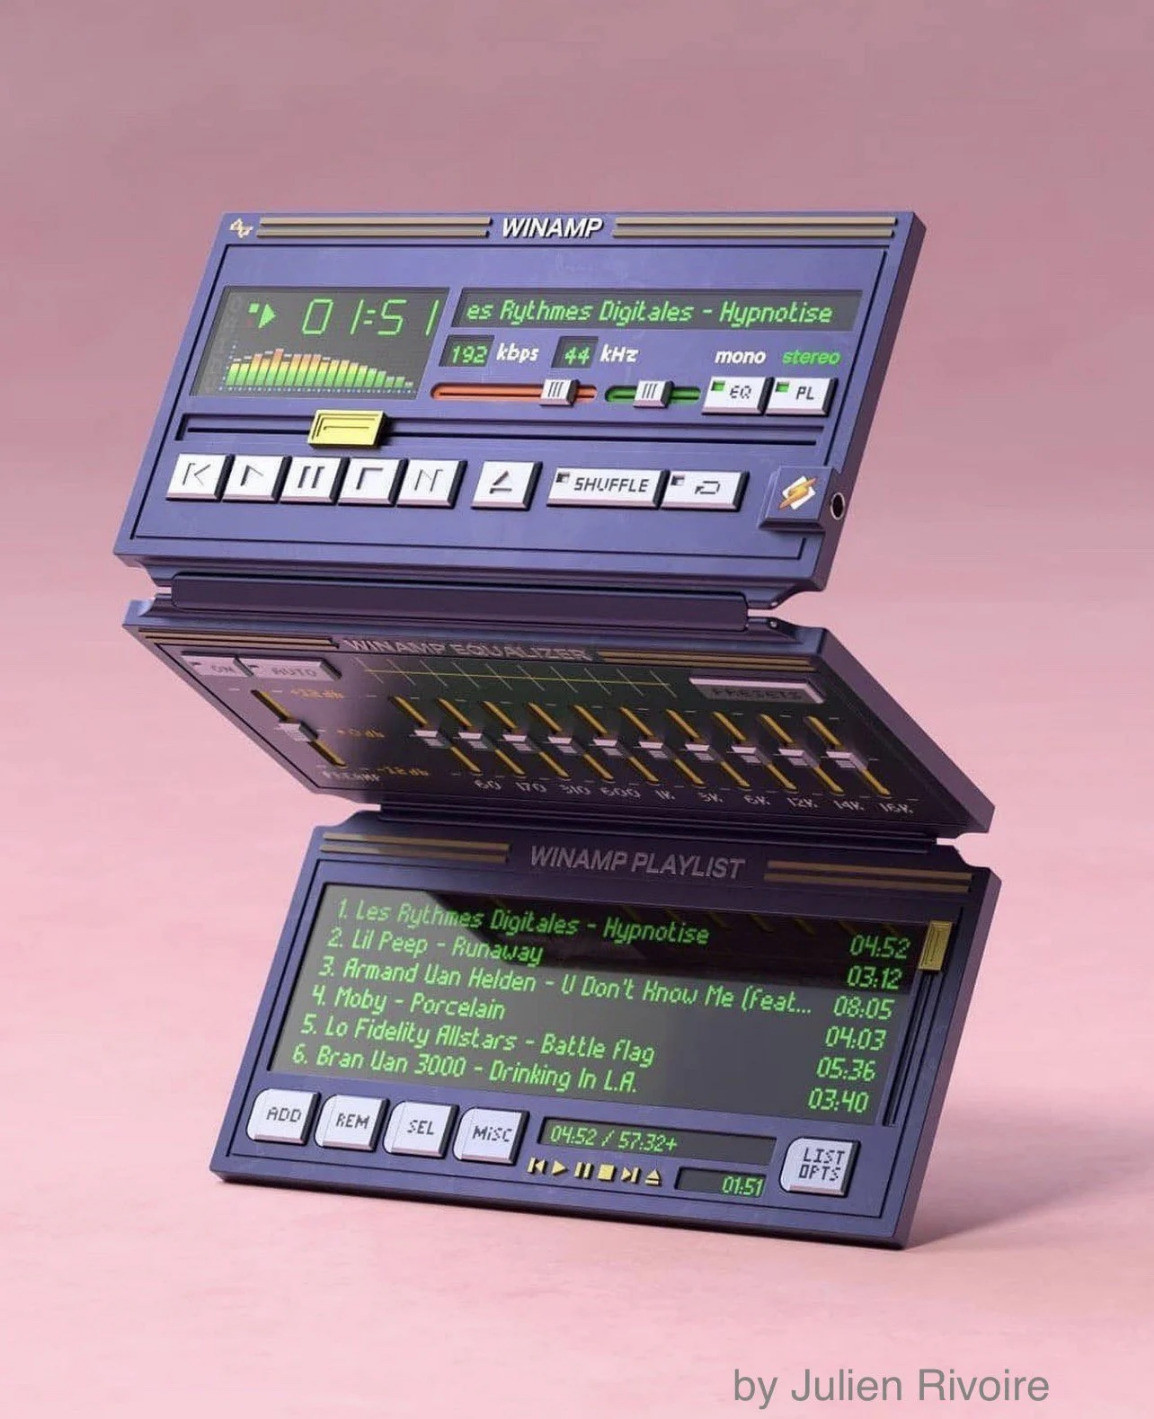 A mockup of a foldable device that is basically the classic Winamp player.